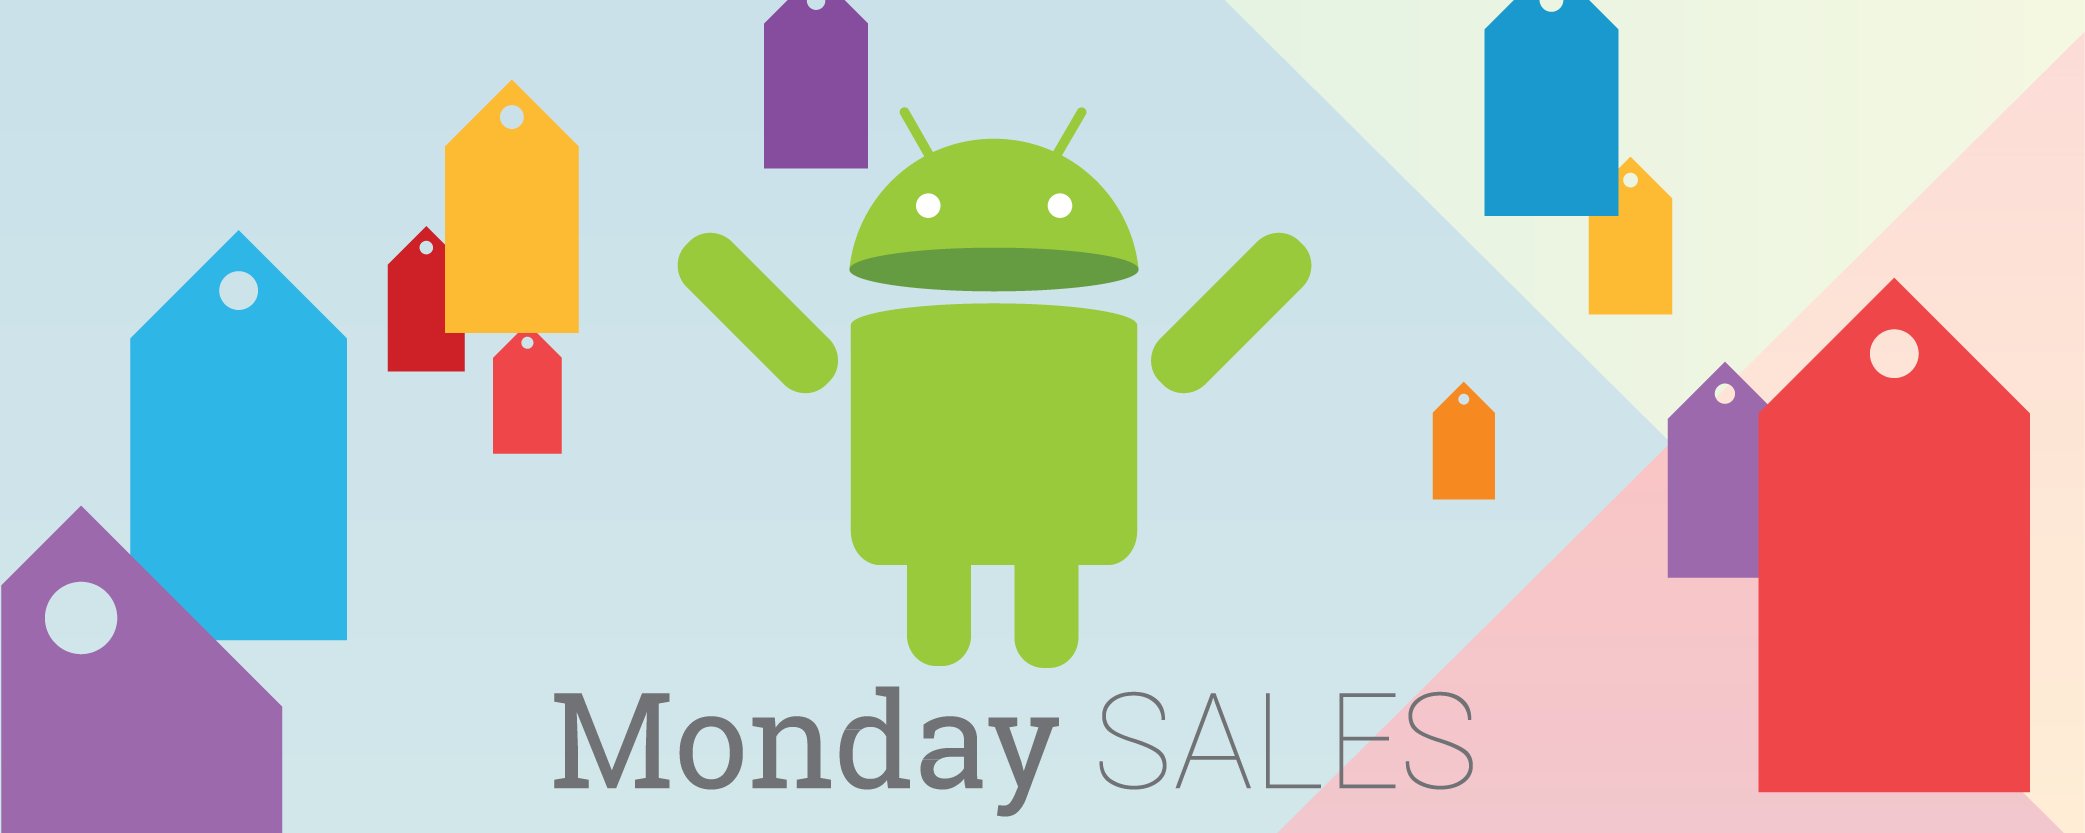 40 temporarily free and 47 on-sale apps and games for Monday